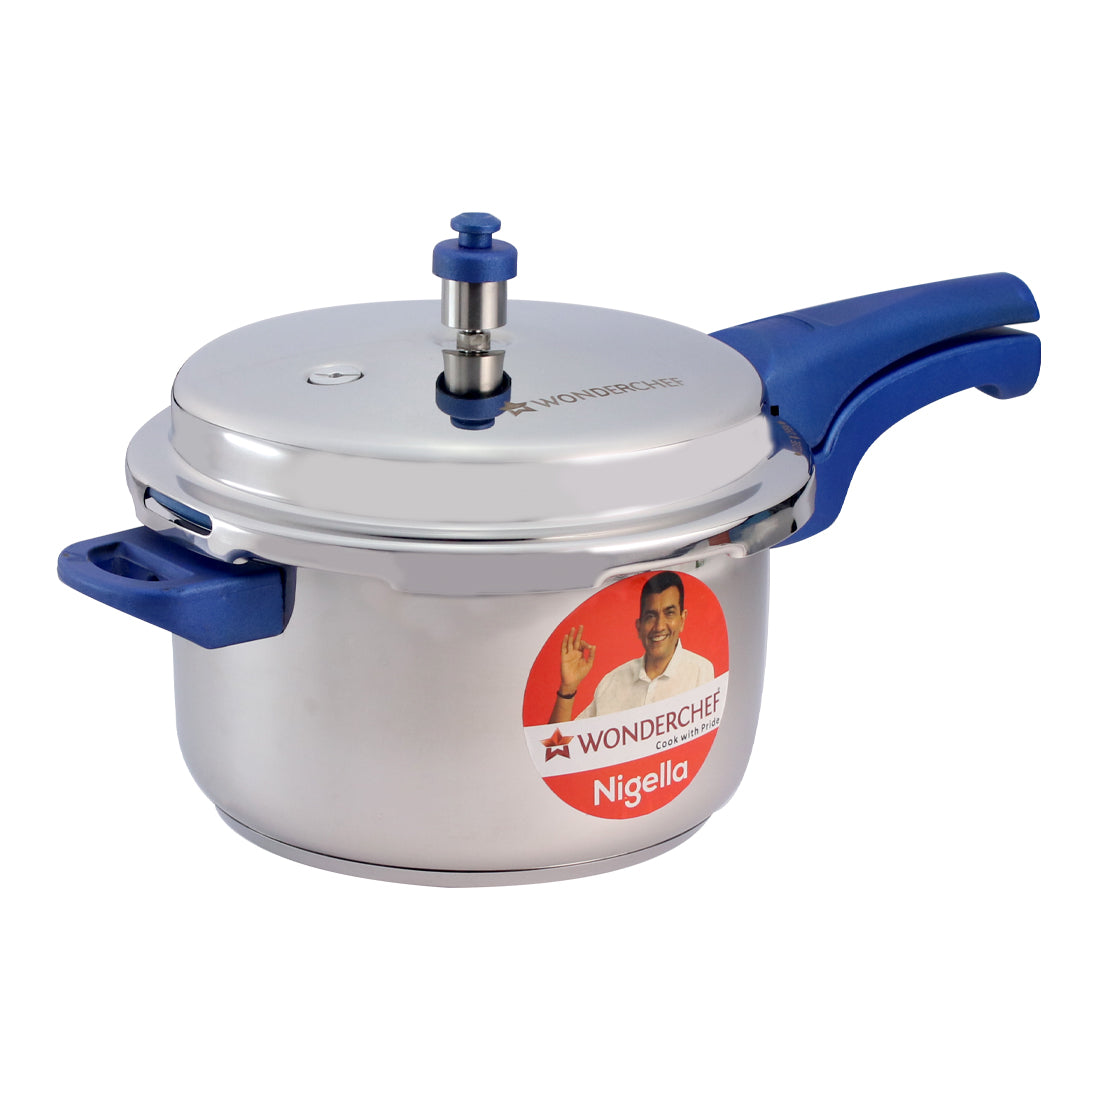 Wonderchef Nigella Induction Base Stainless Steel Pressure Cooker with Outer Lid, Blue, 7L